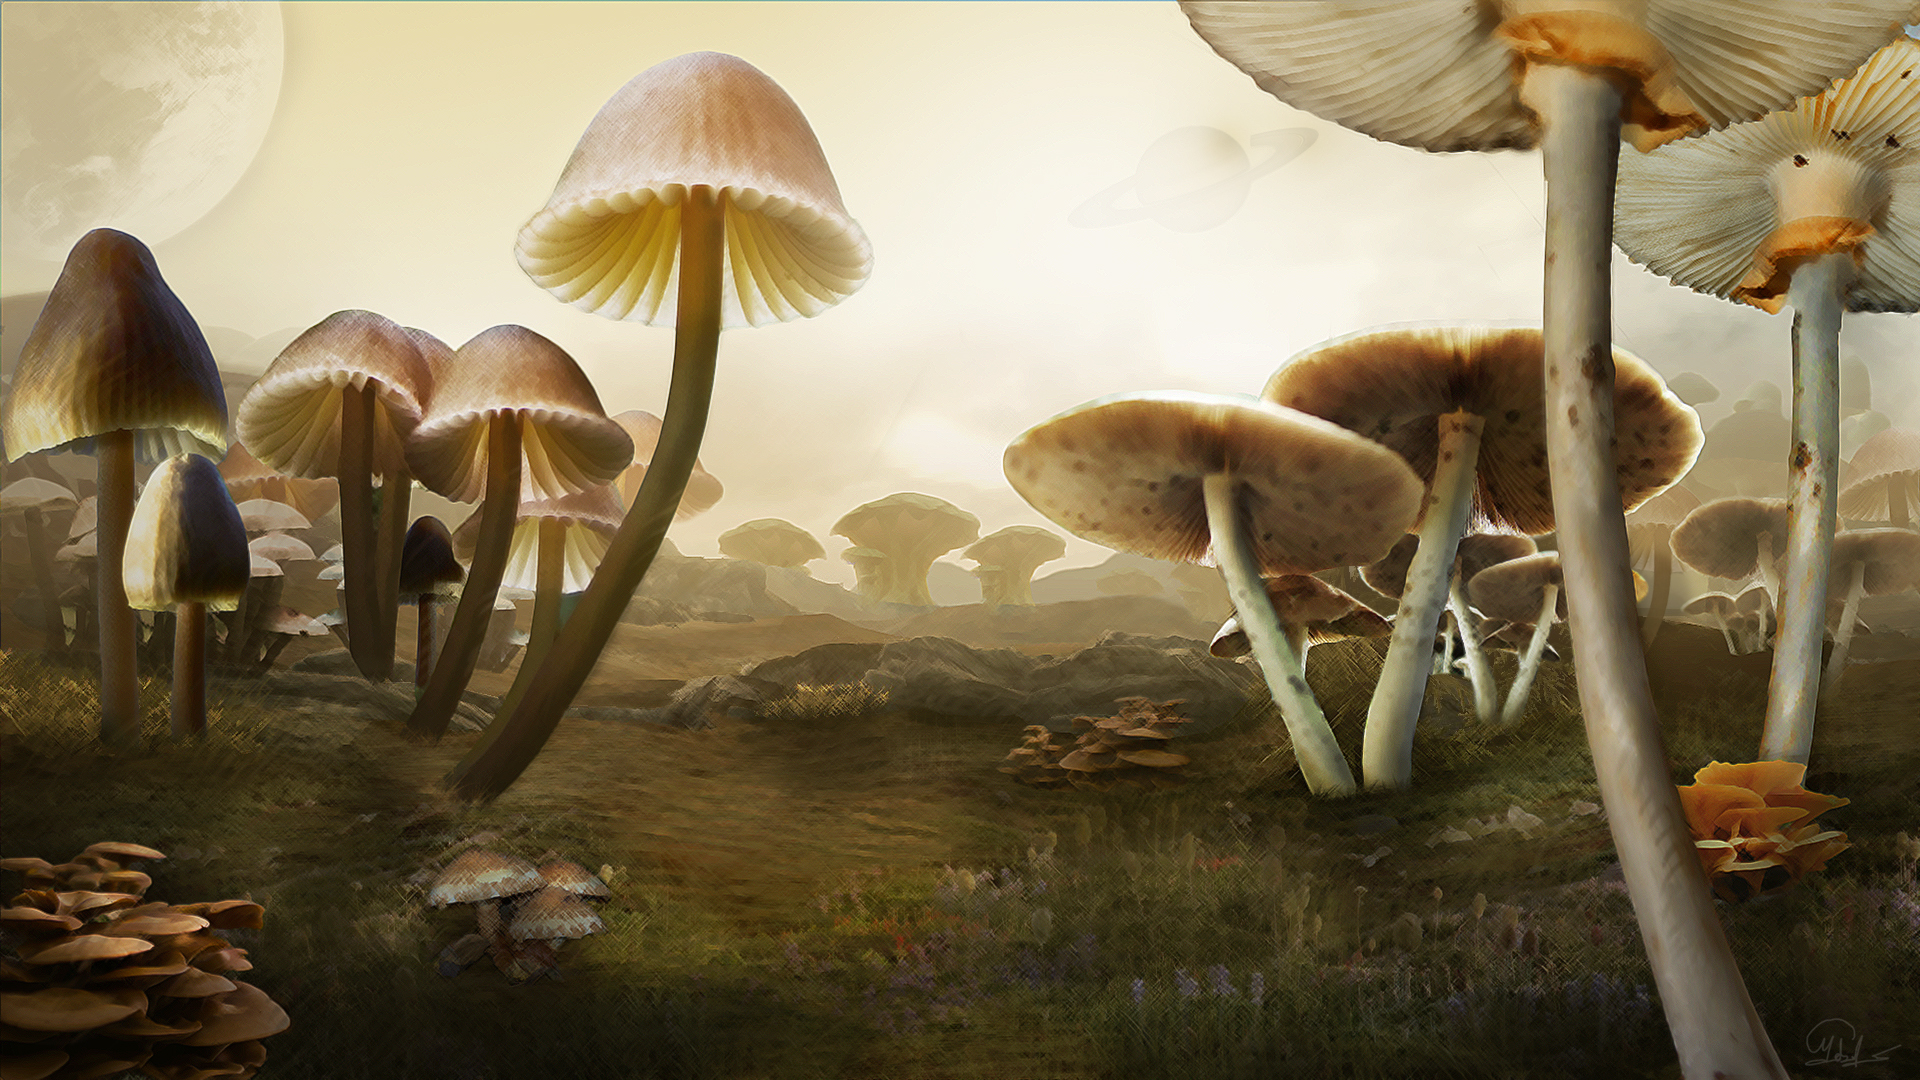 Giant Mushrooms – Matte Painting | MCrassus Art The Word Details